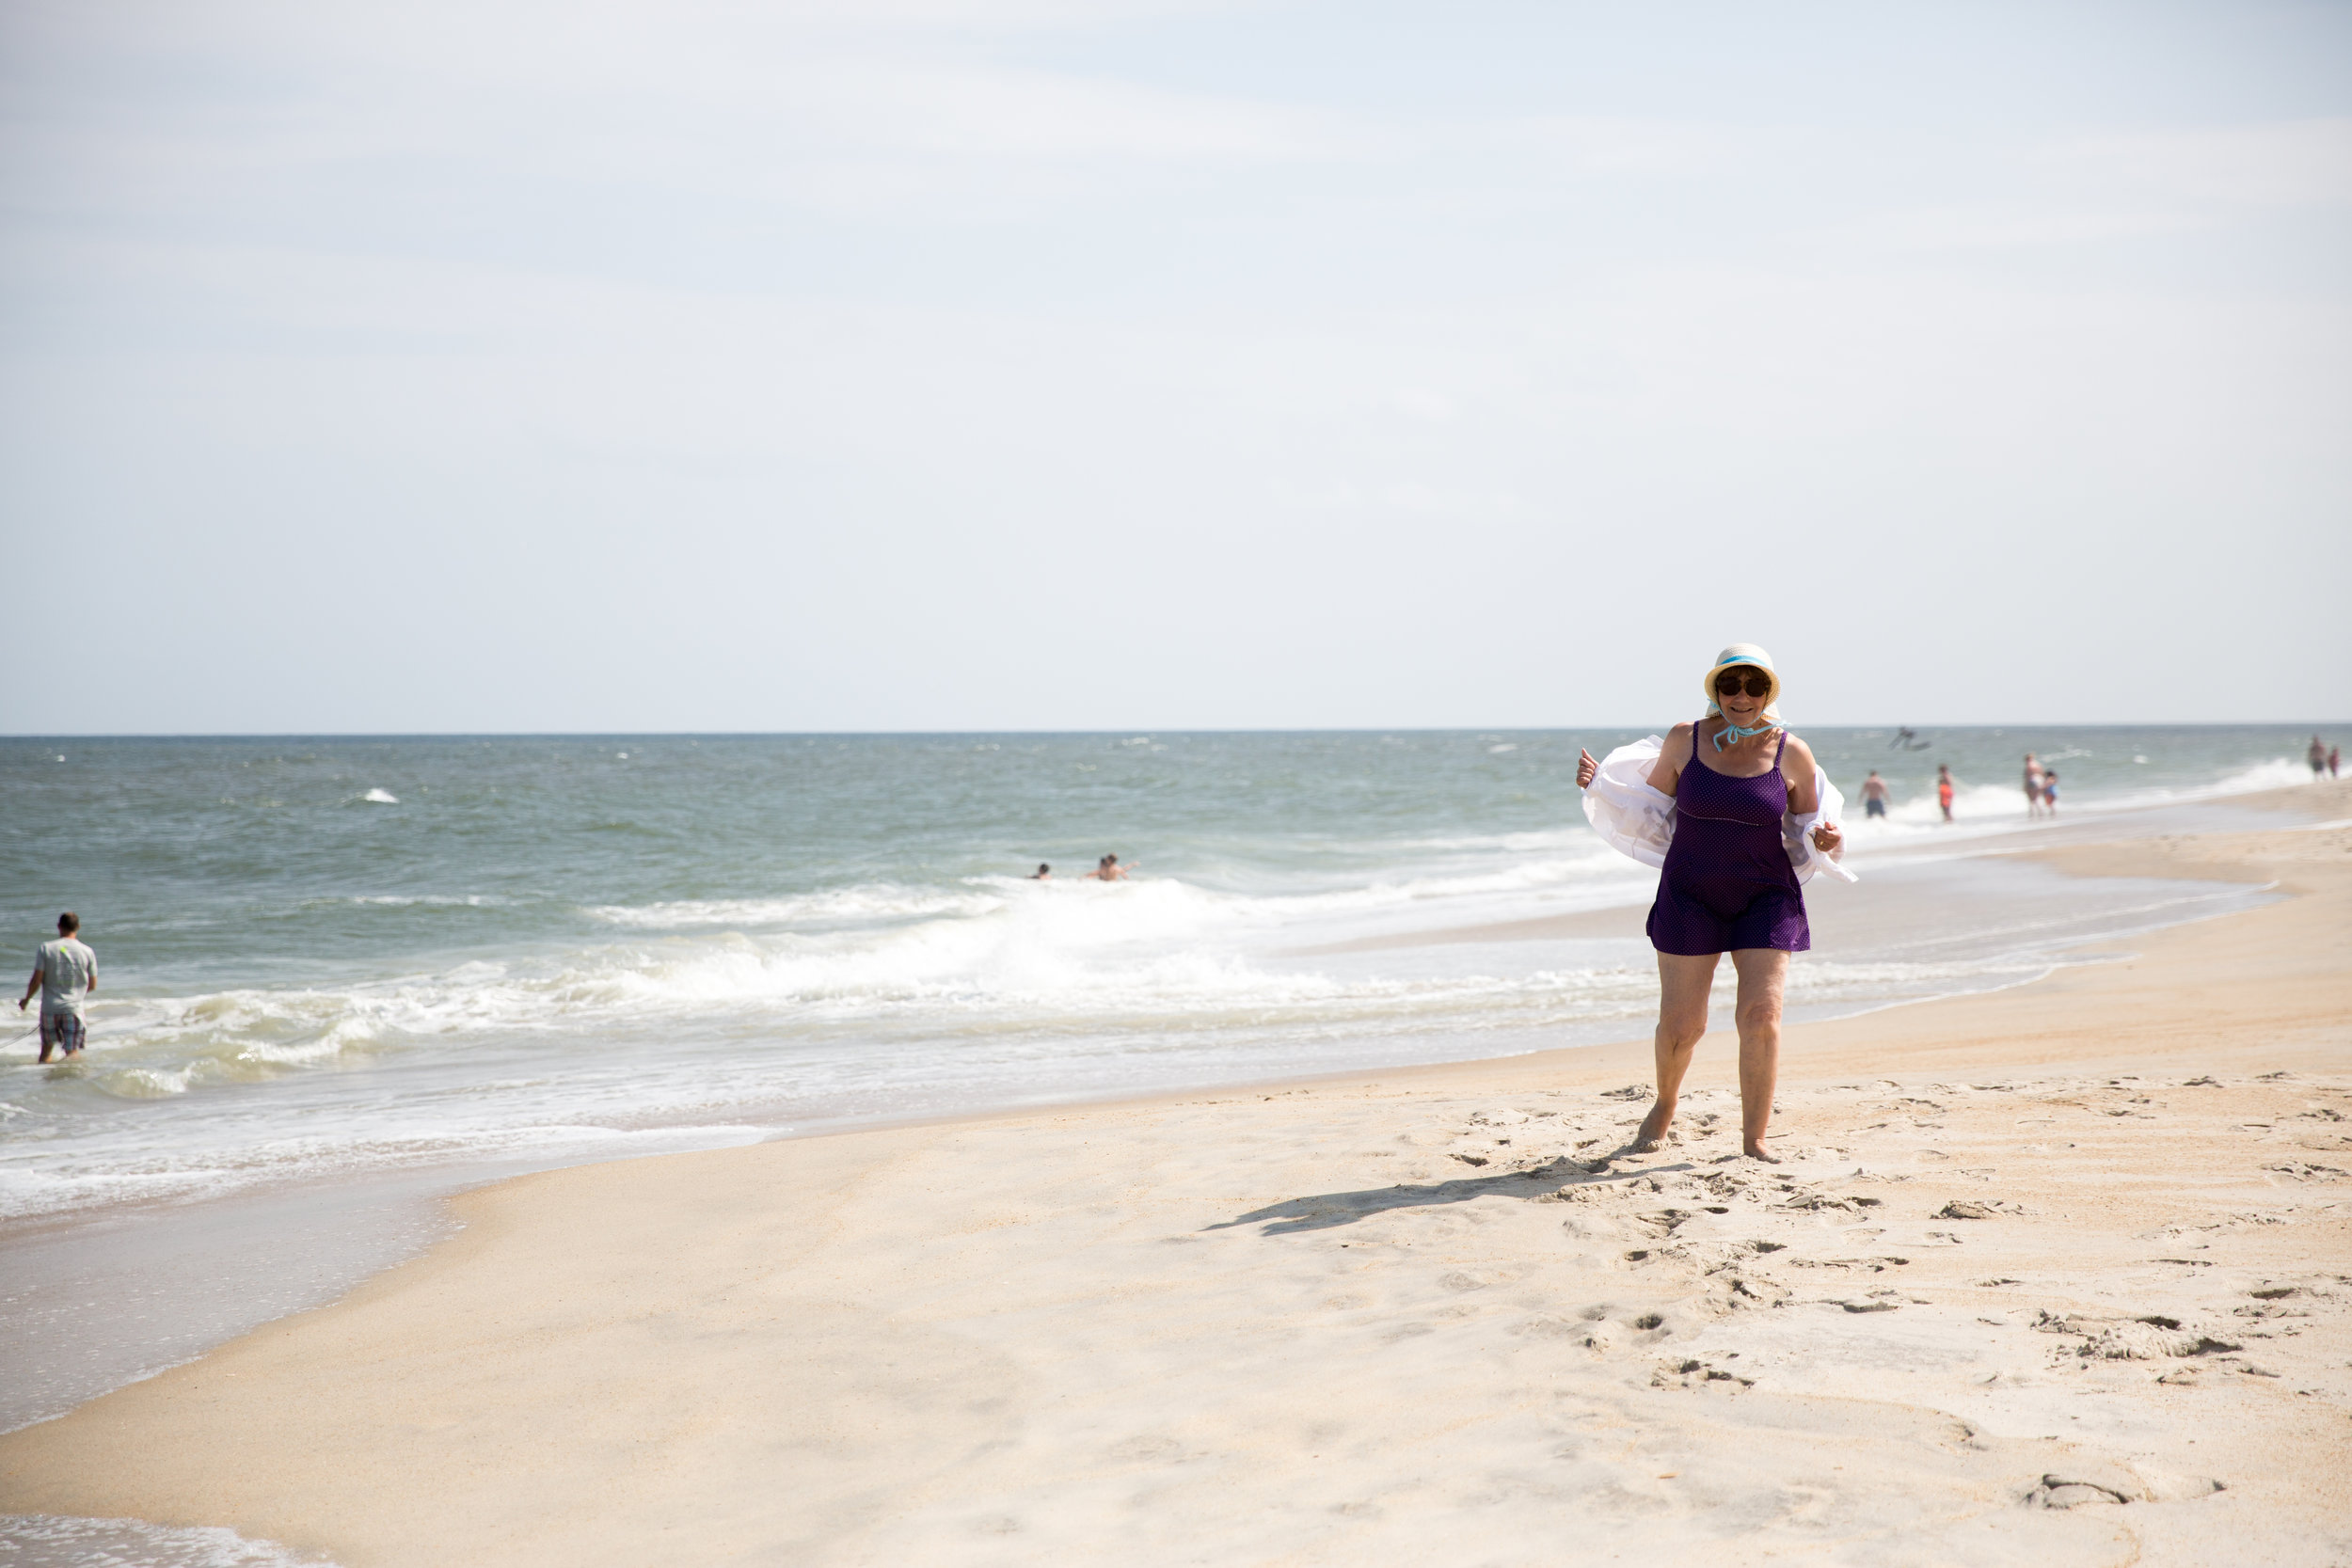 AKZPhotography9618.outerbanksphotography